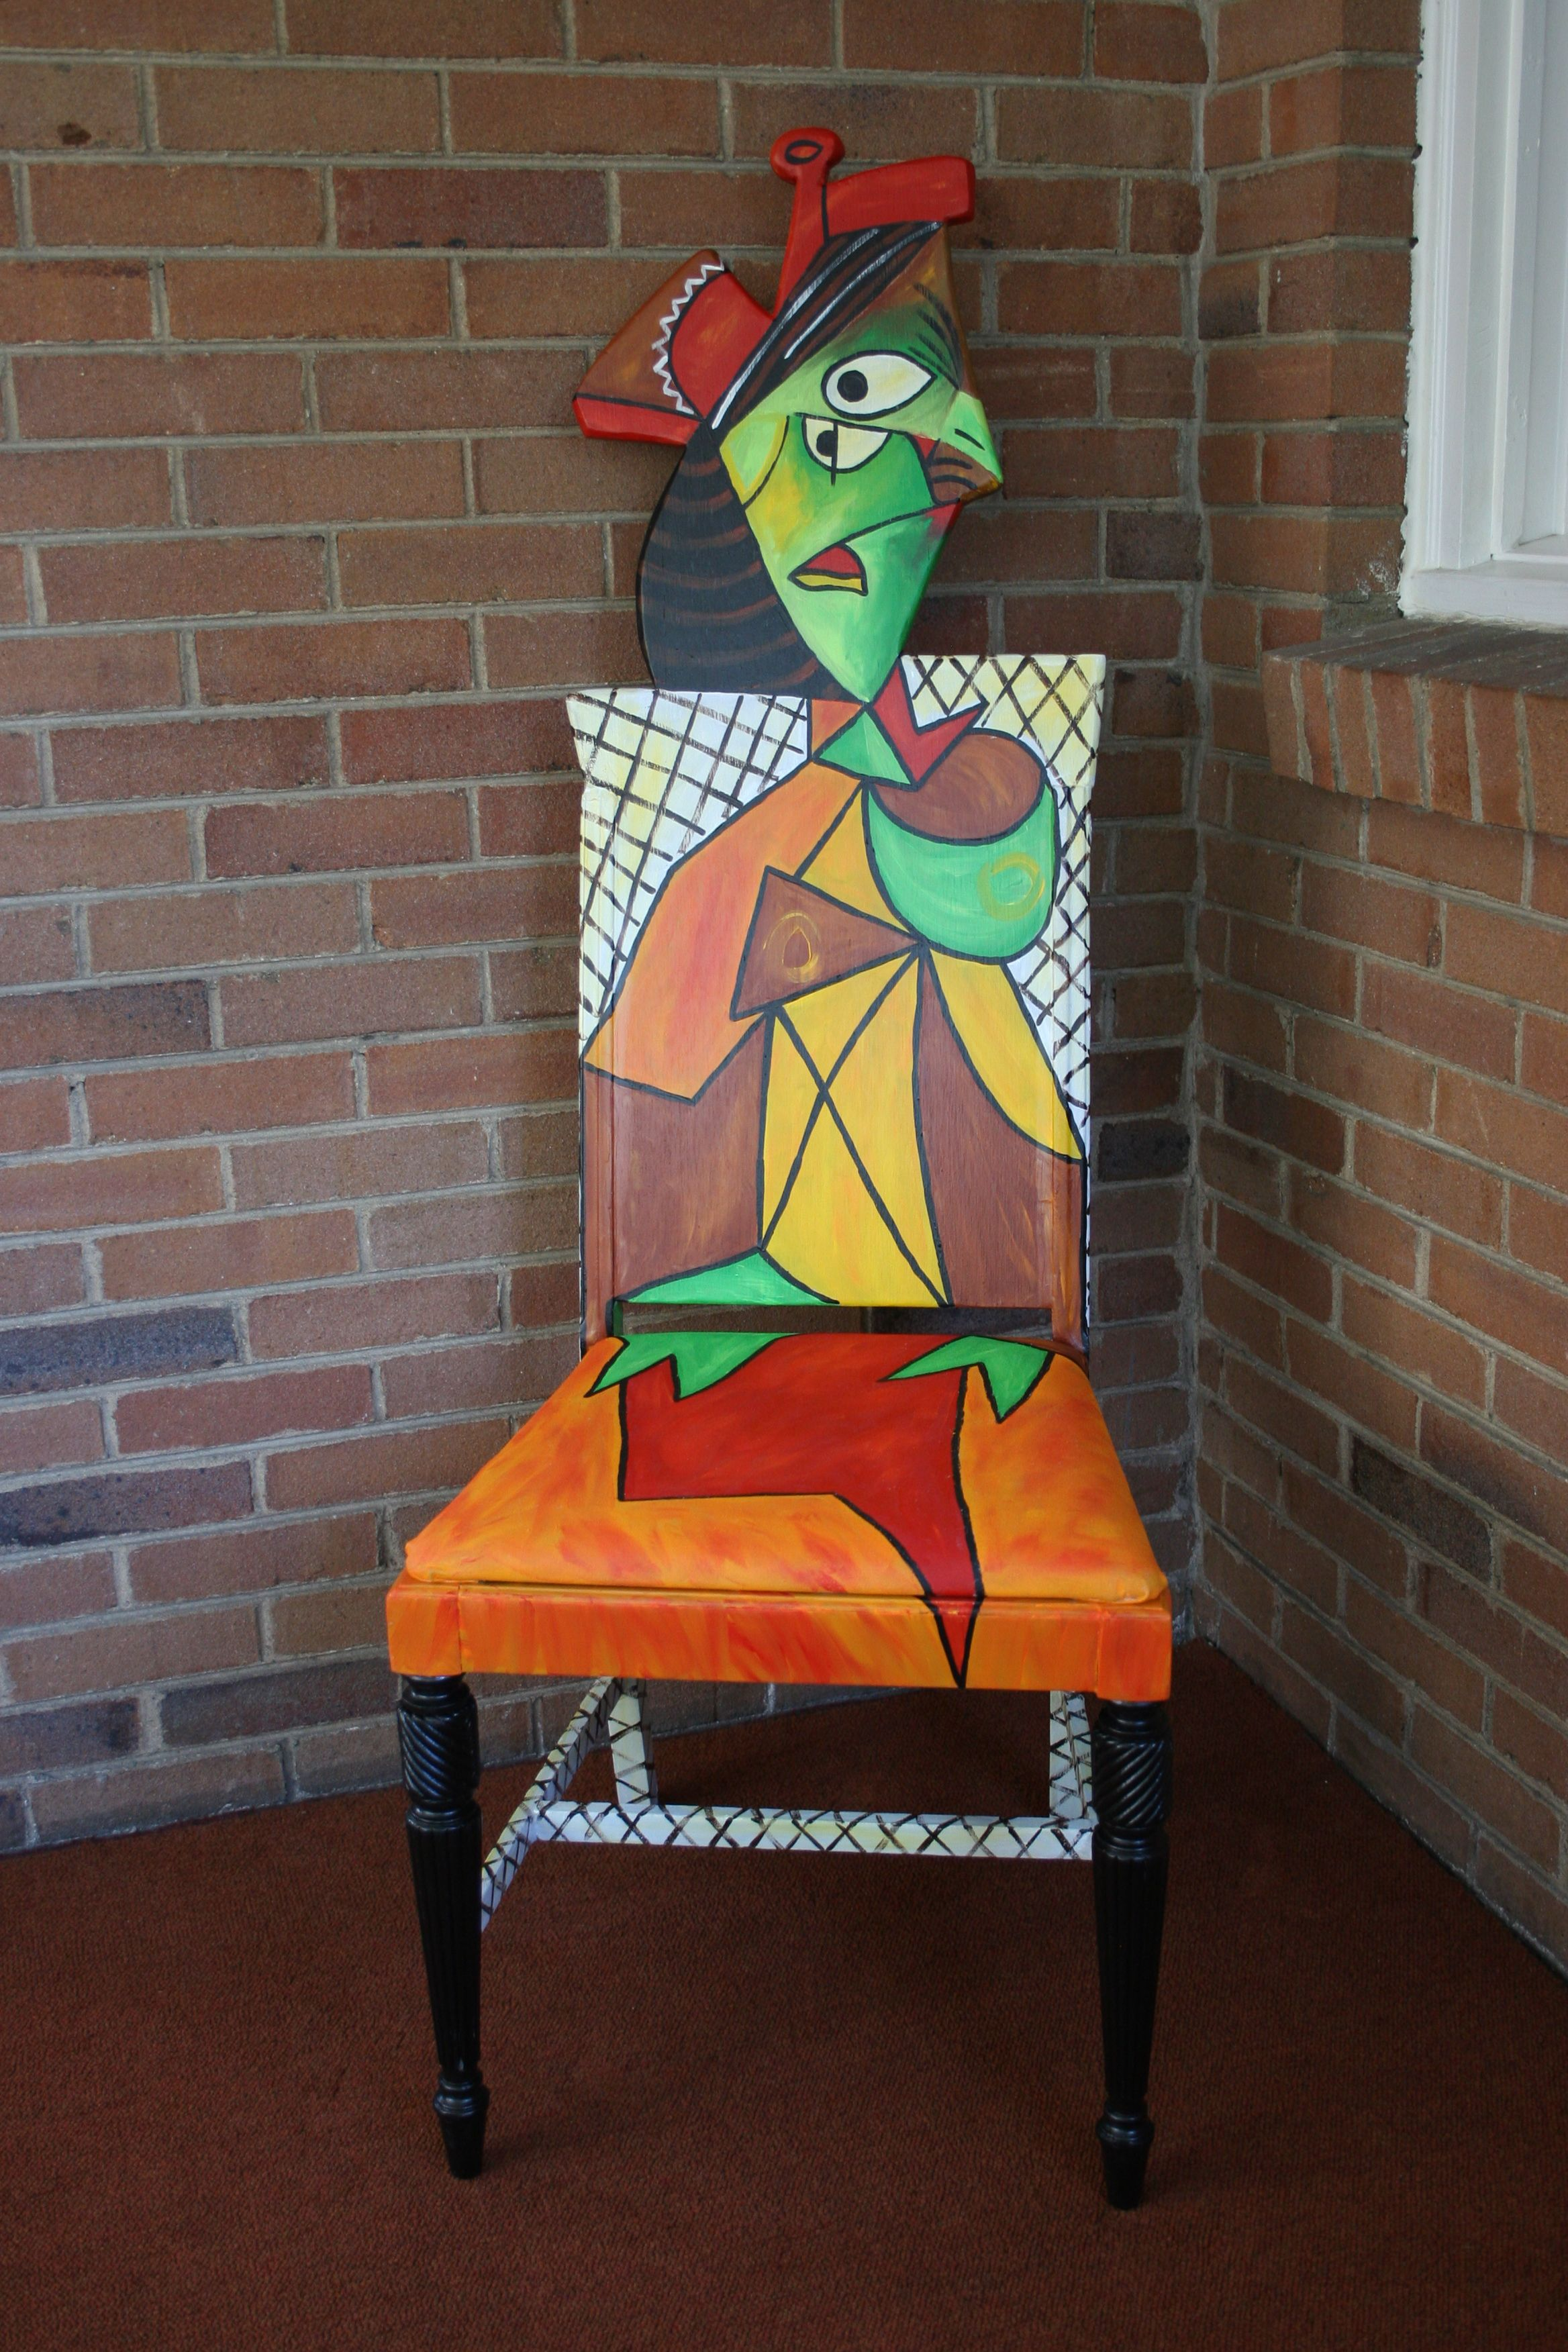 personalized makeup artist chair raymour and flanigan accent chairs picasso style handpainted by todd fendos